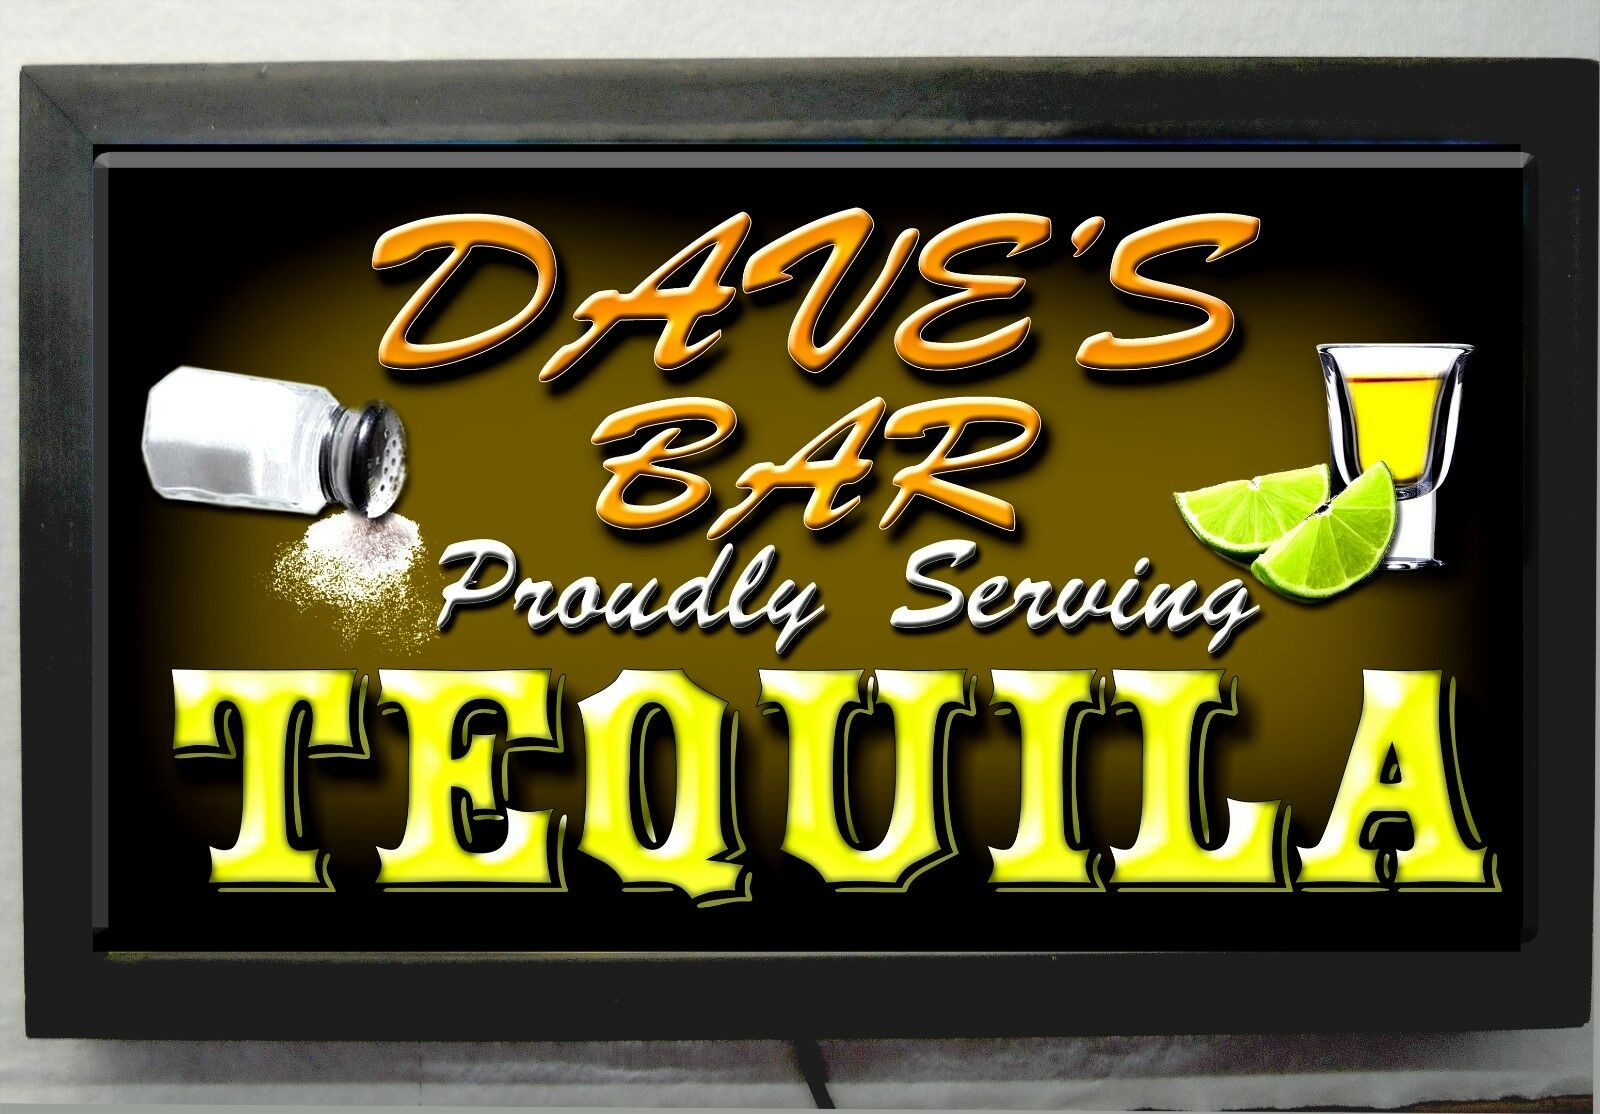 LED LIGHTED TEQUILA BAR SIGN PERSONALIZED - GREAT GIFT IDEA